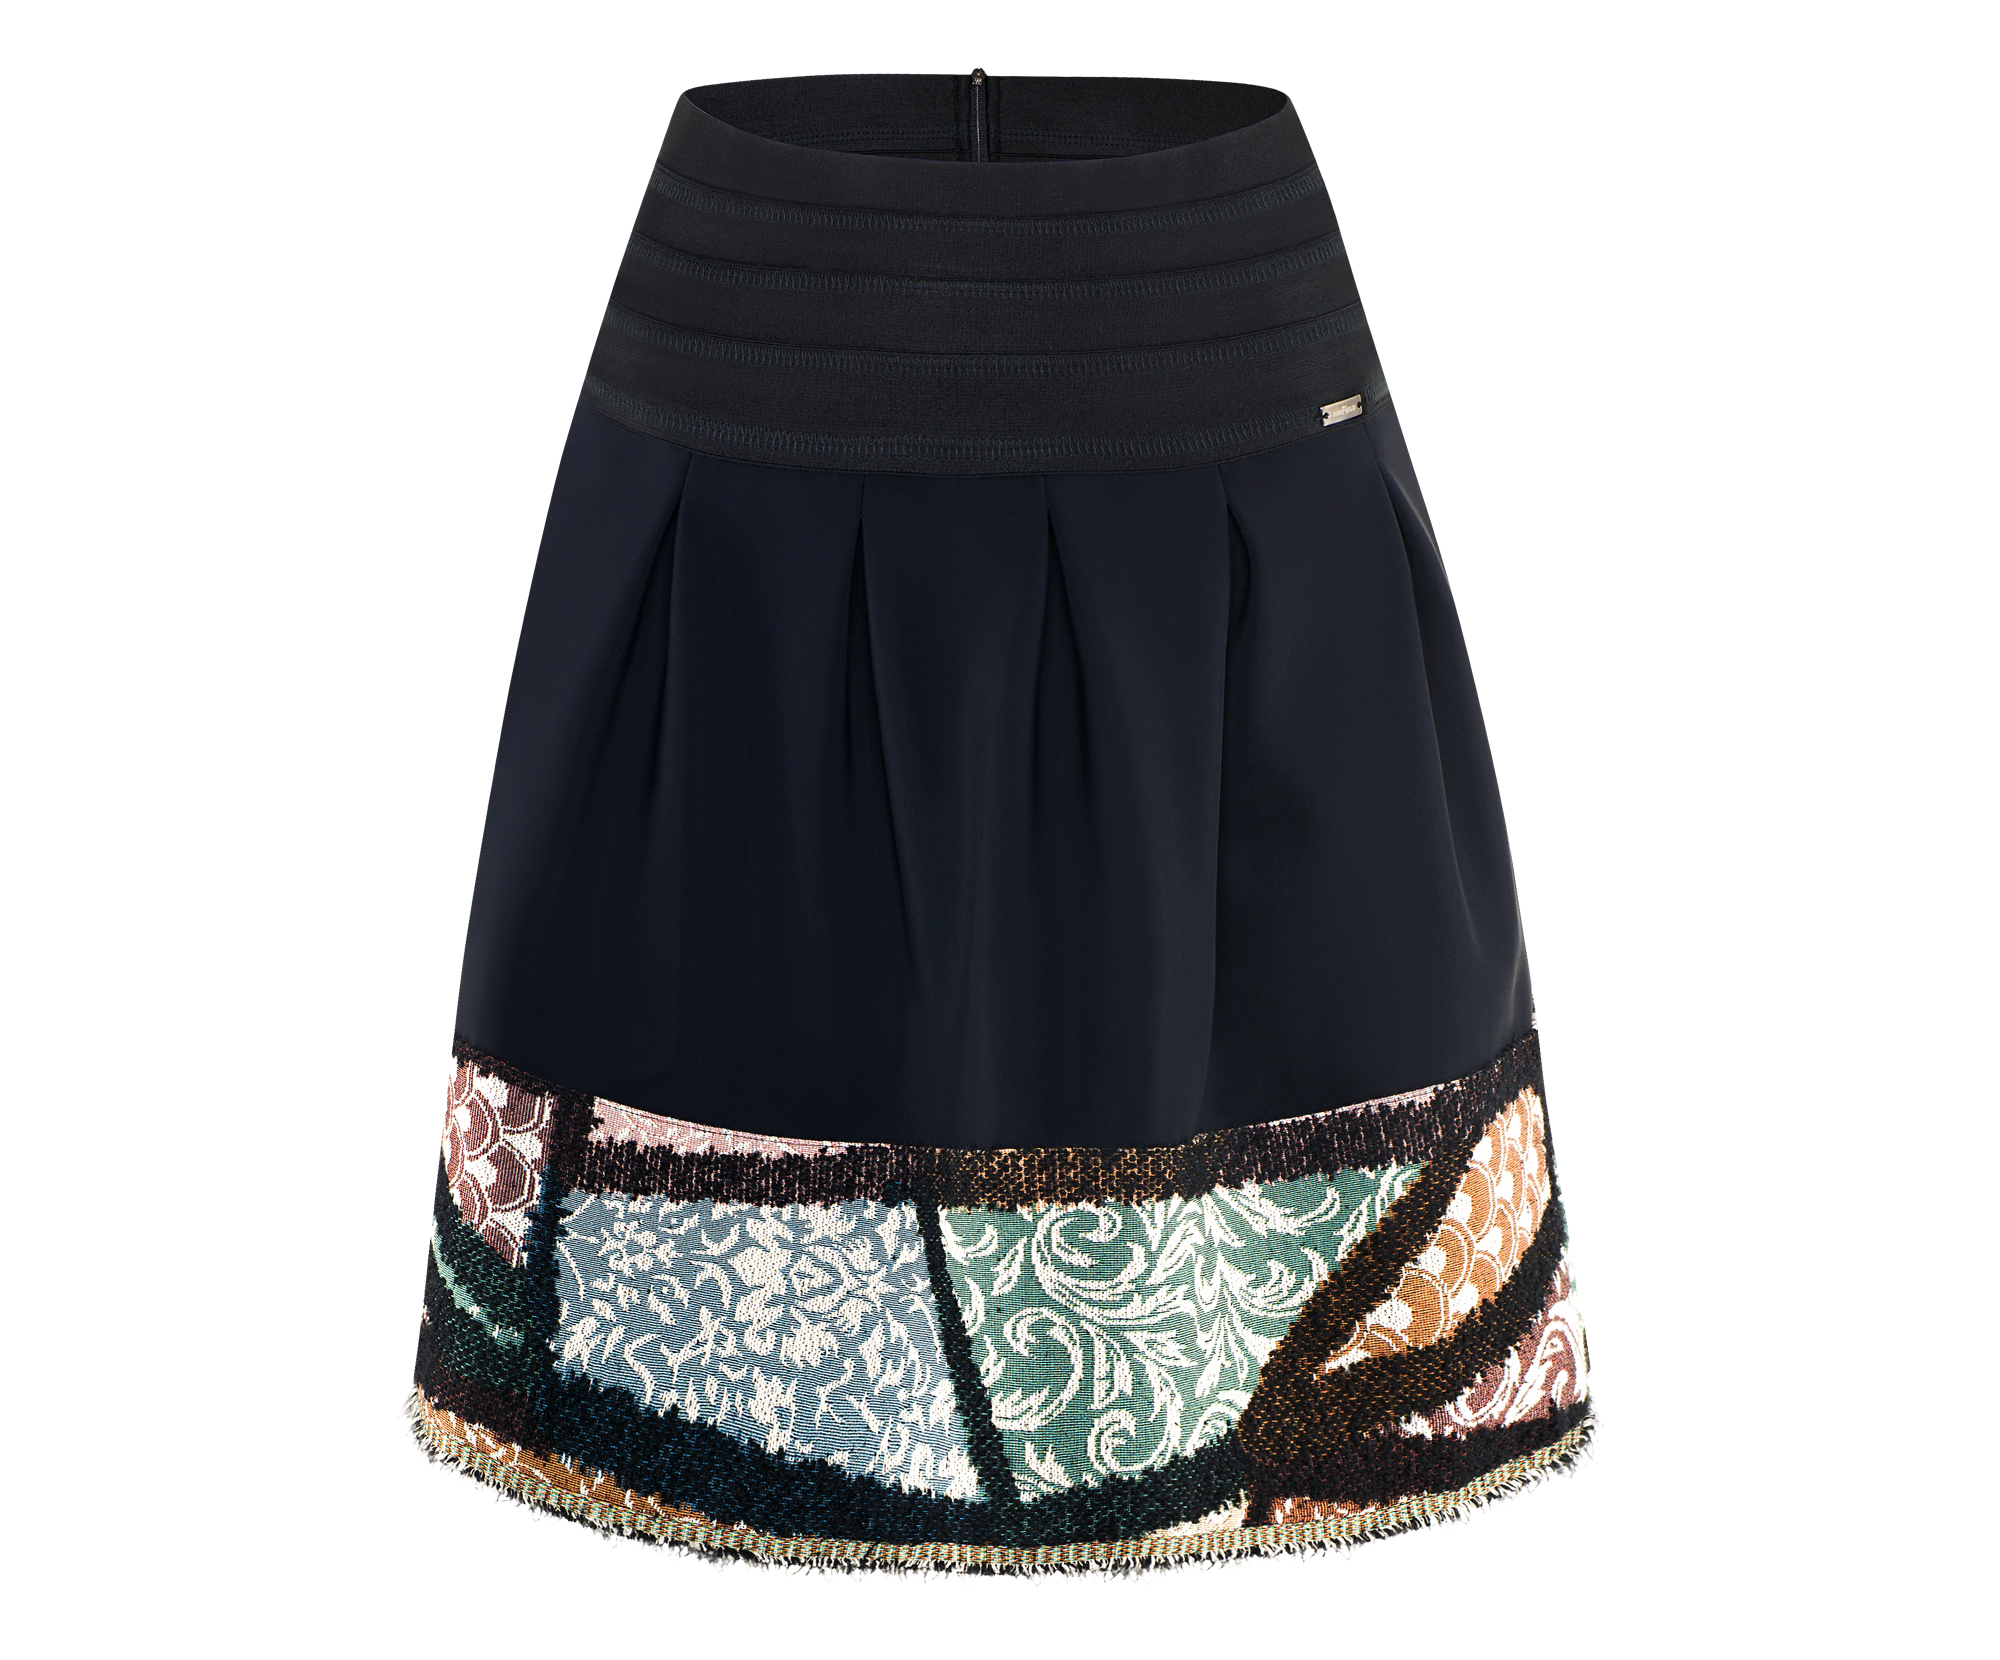 Airfield Flared Skirt with Decorative Edging